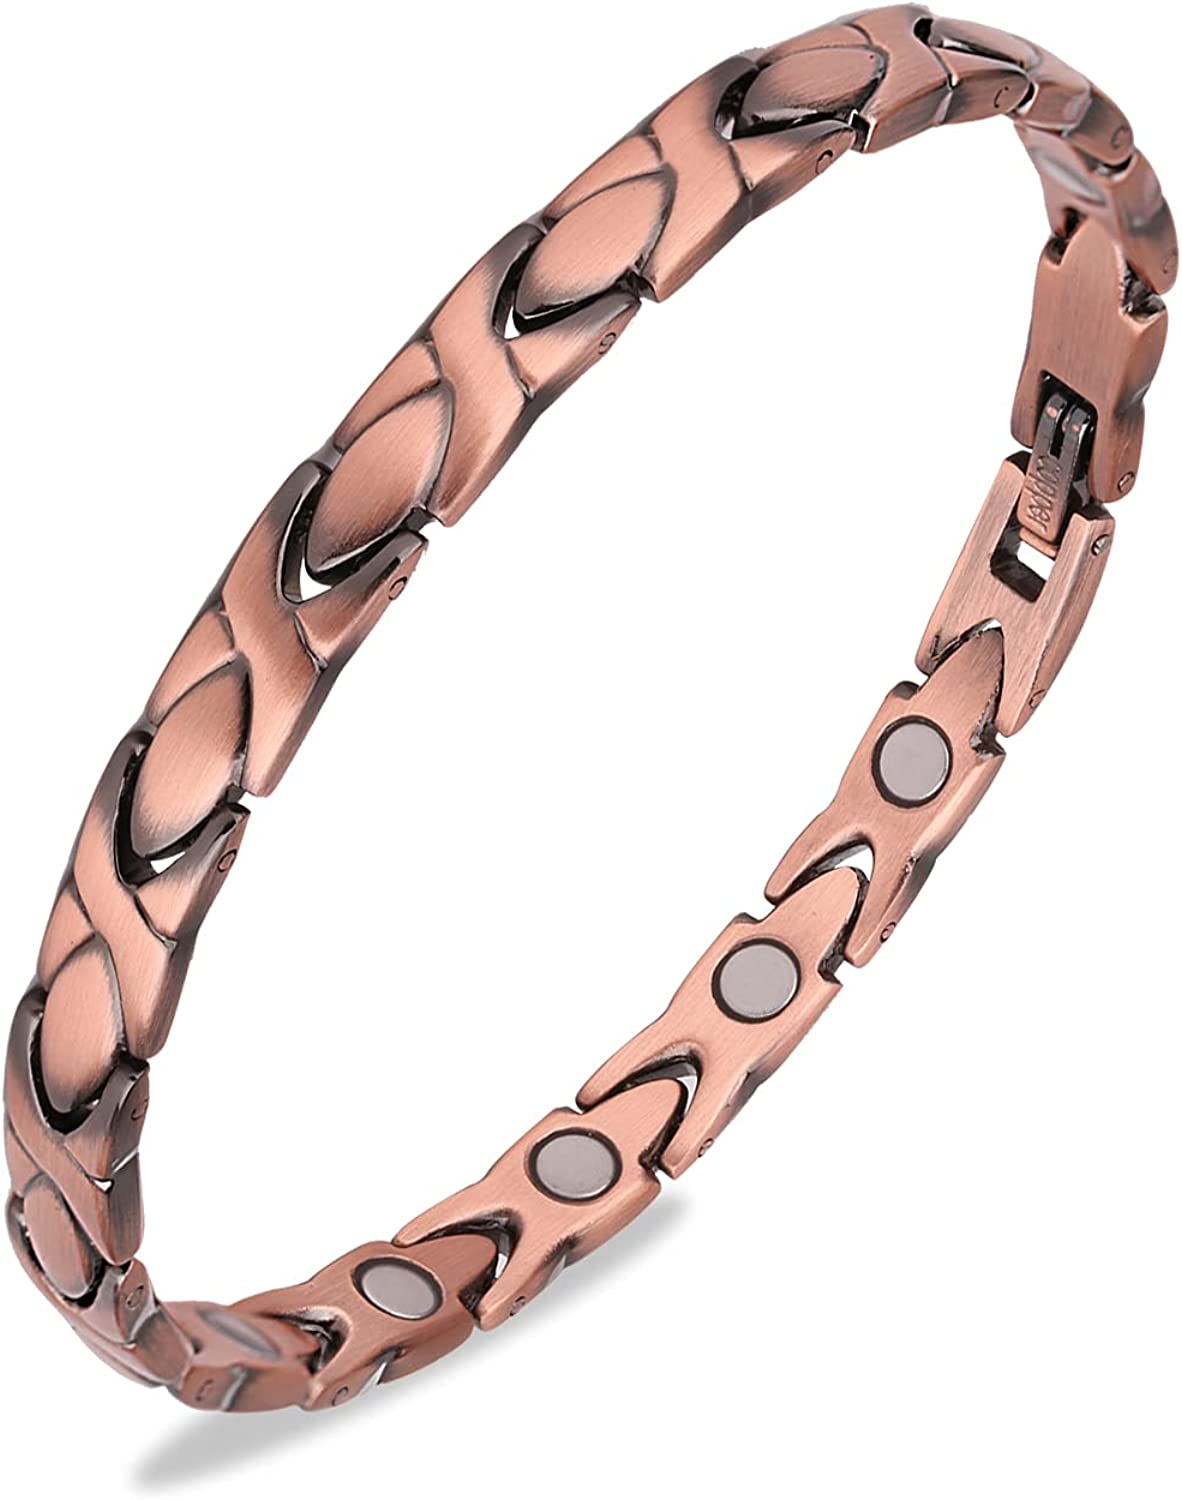 Gioieiieria 99.9% Copper Ranking Outlet sale feature TOP7 Bracelet for Women Therapy Bra Magnetic